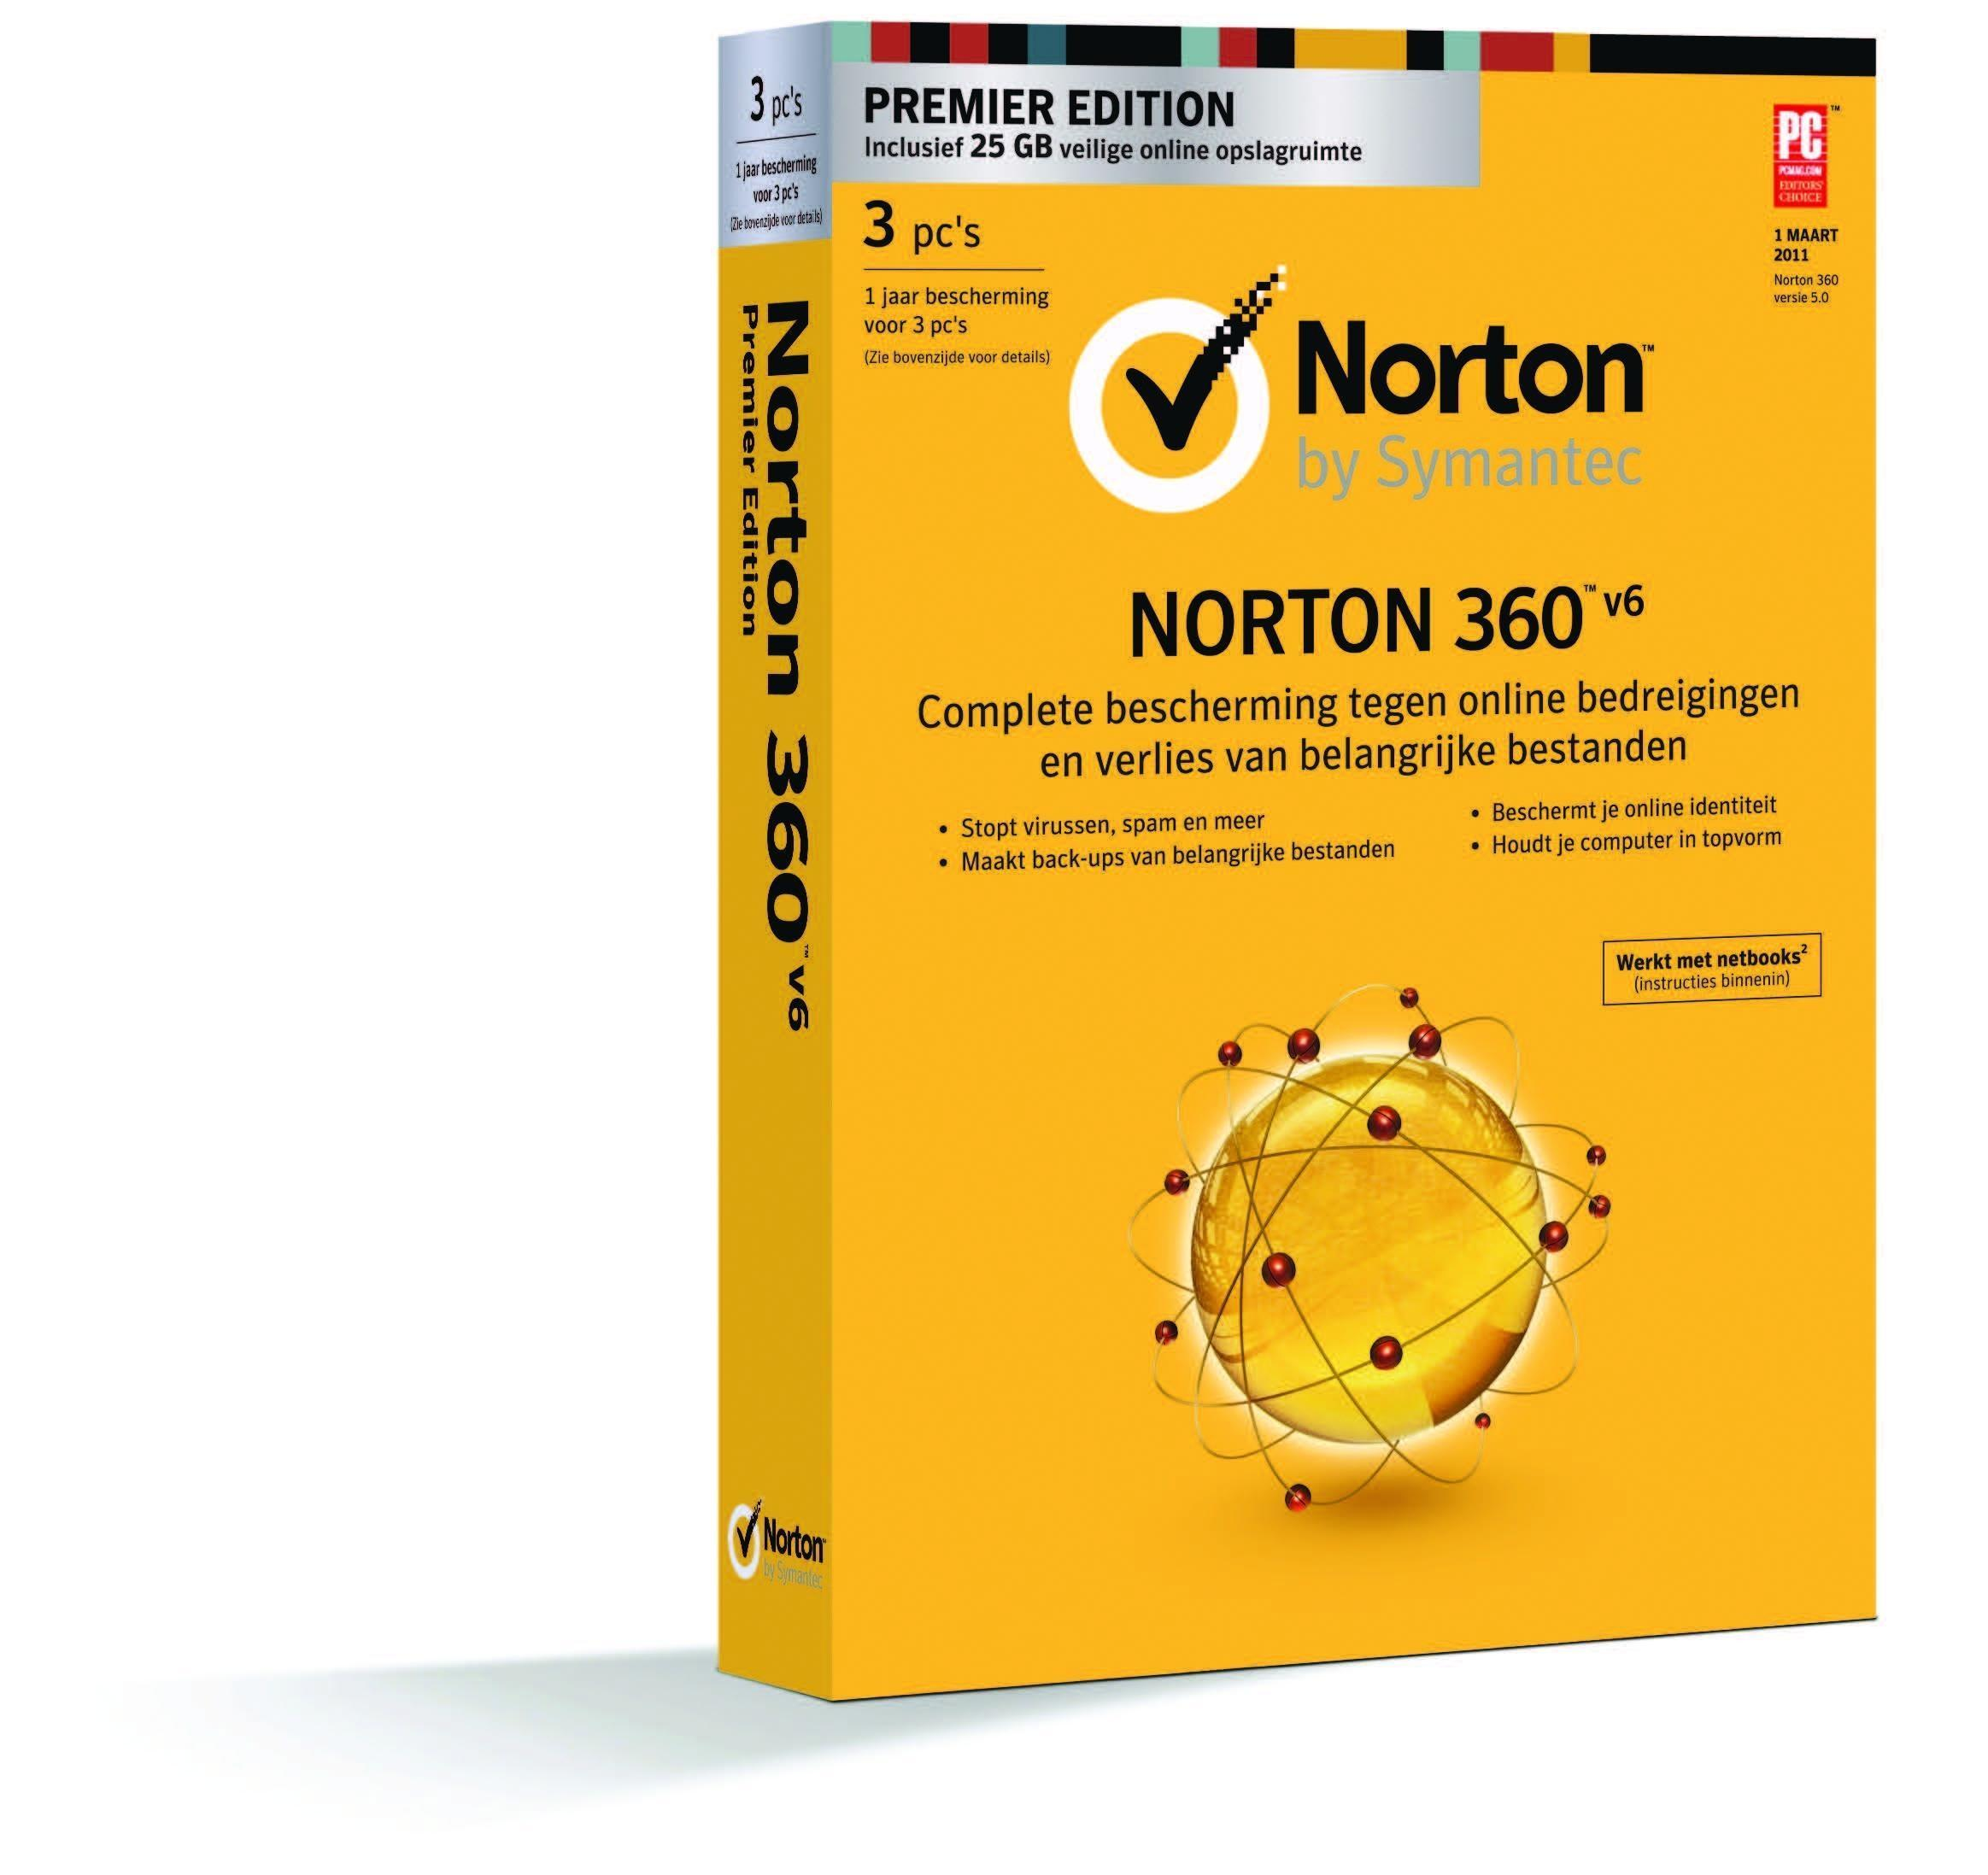 Introducing the latest in PC protection: Norton ! This comprehensive software suite eliminates the need for any additional security, performance optimization and data backup & restore products. Truly a breakthrough in PC protection, Norton provides a hassle-free user experience.